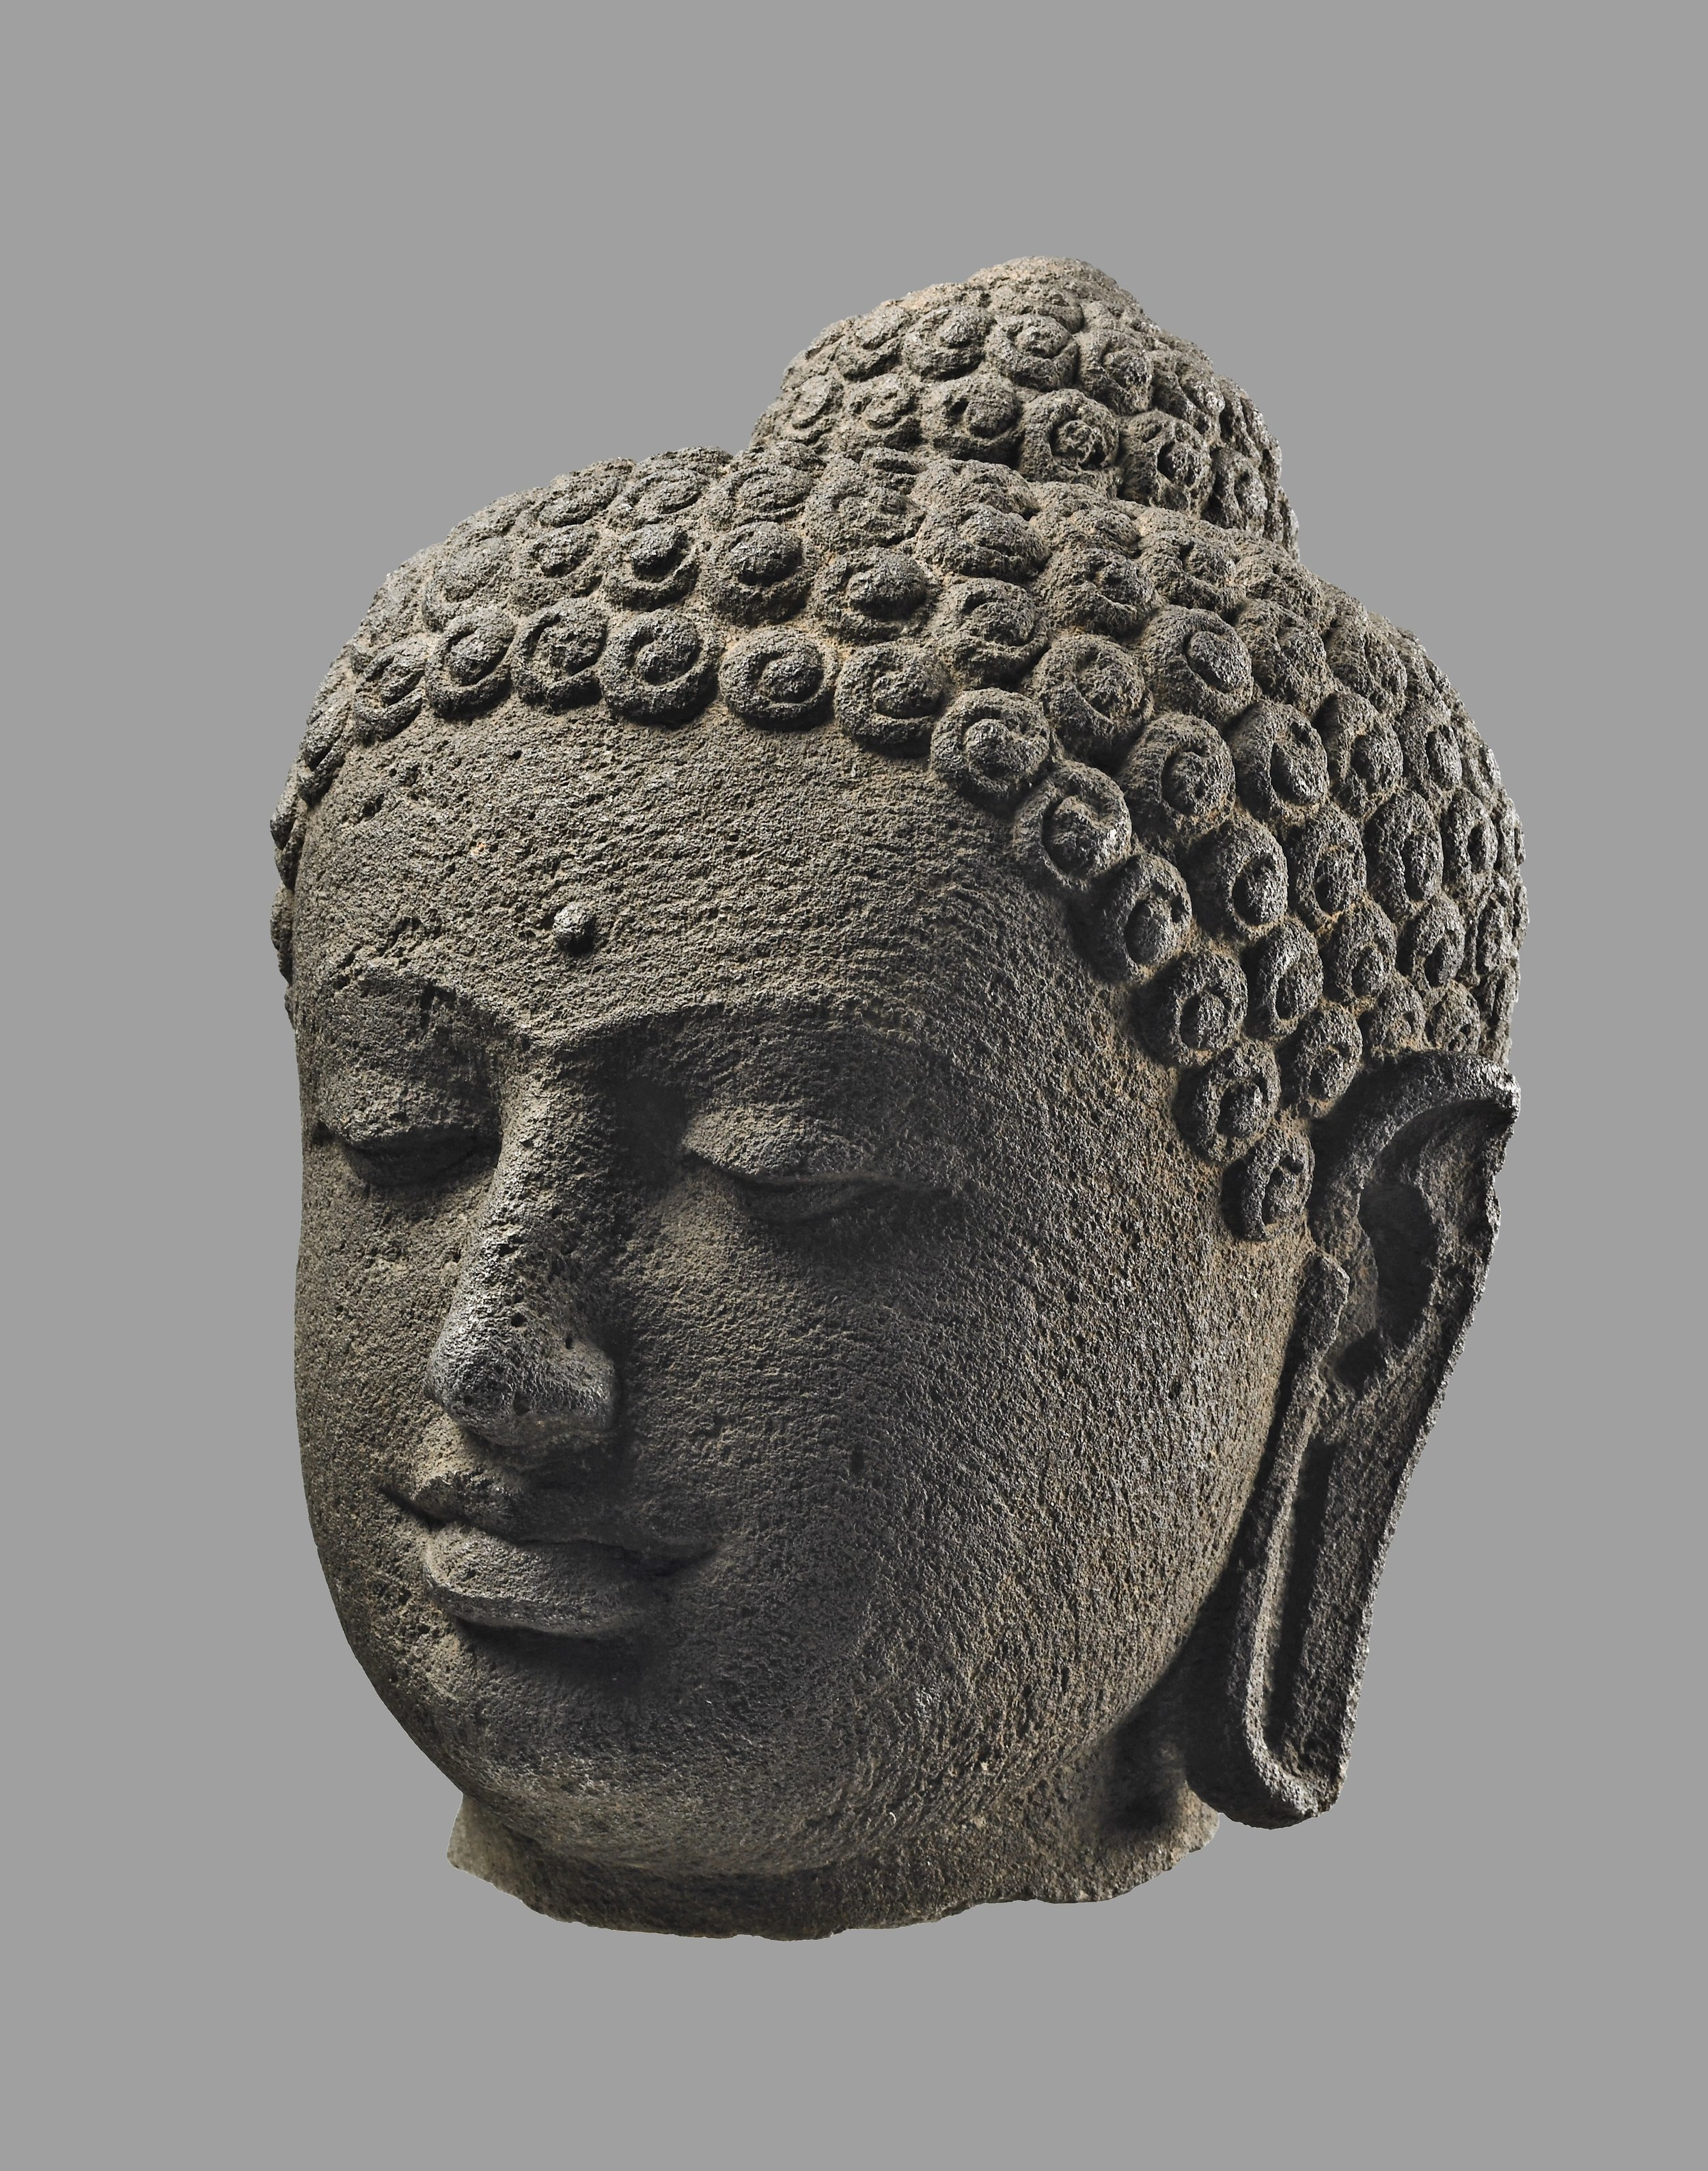 A head of the Buddha from Borobudur. © The Trustees of the British Museum